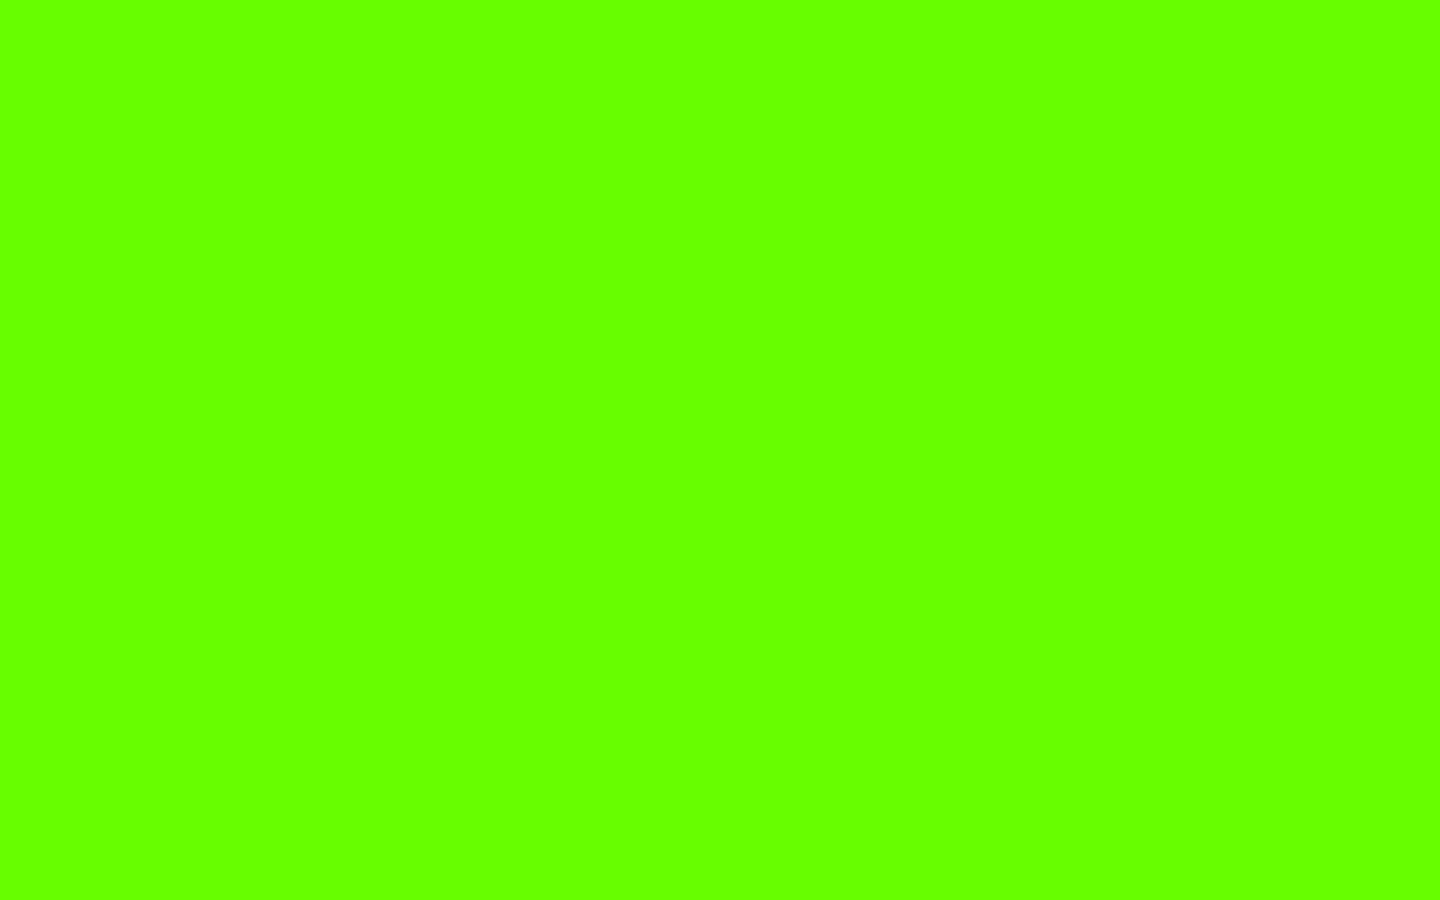 1440x900 Bright Green Solid Color Background